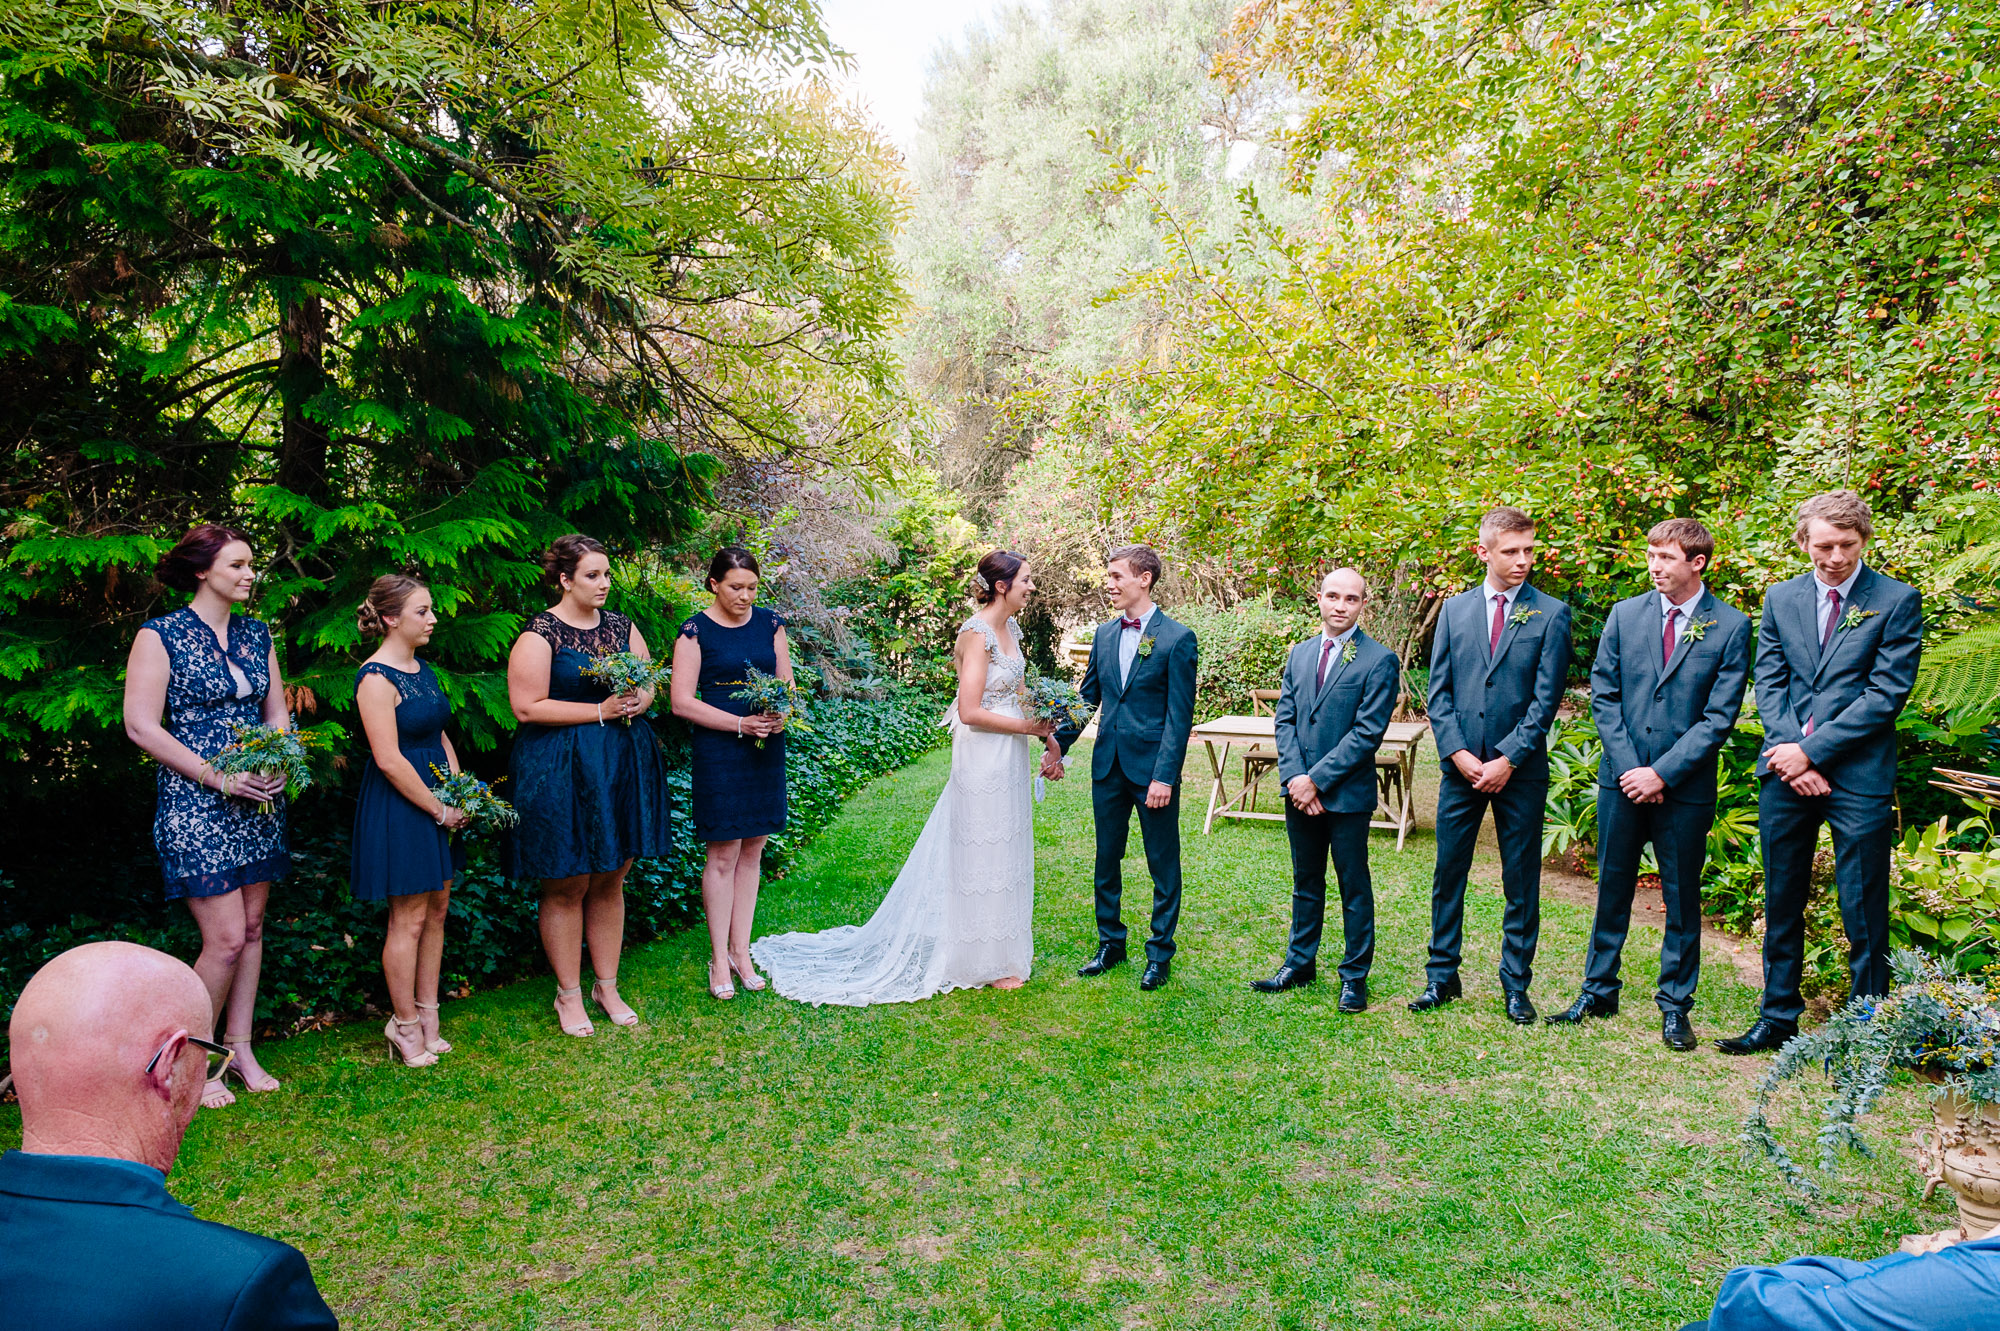 Bridal party at Chateau Dore wedding